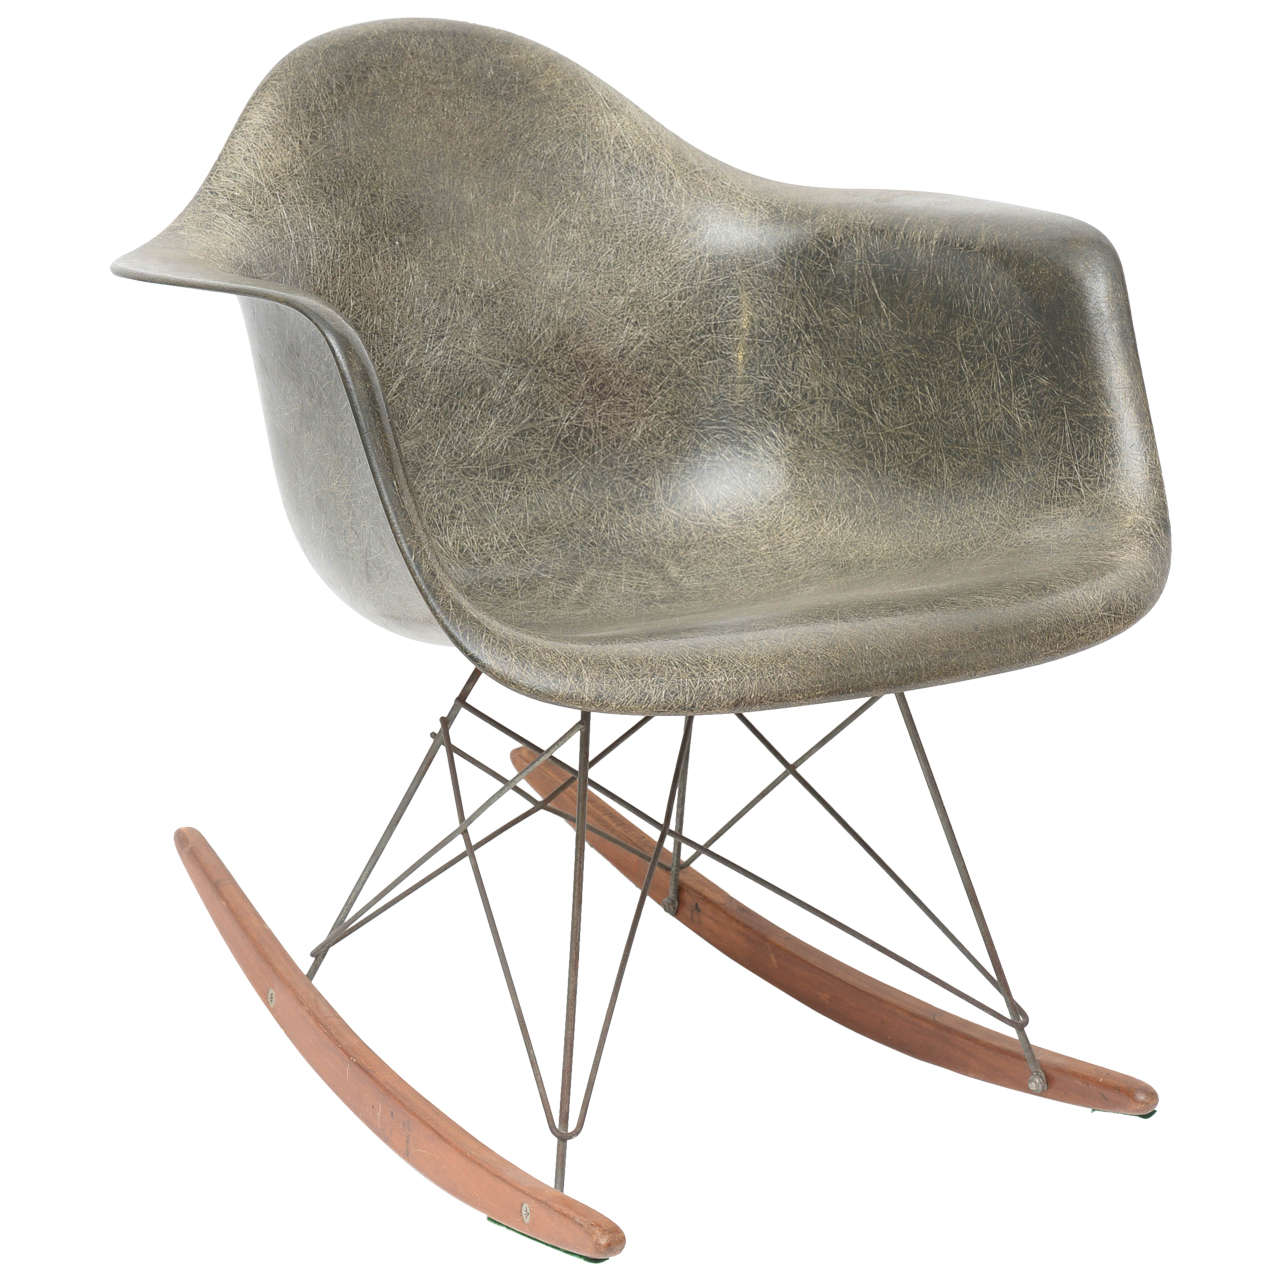 charles and ray eames rocker chair for sale at 1stdibs. Black Bedroom Furniture Sets. Home Design Ideas